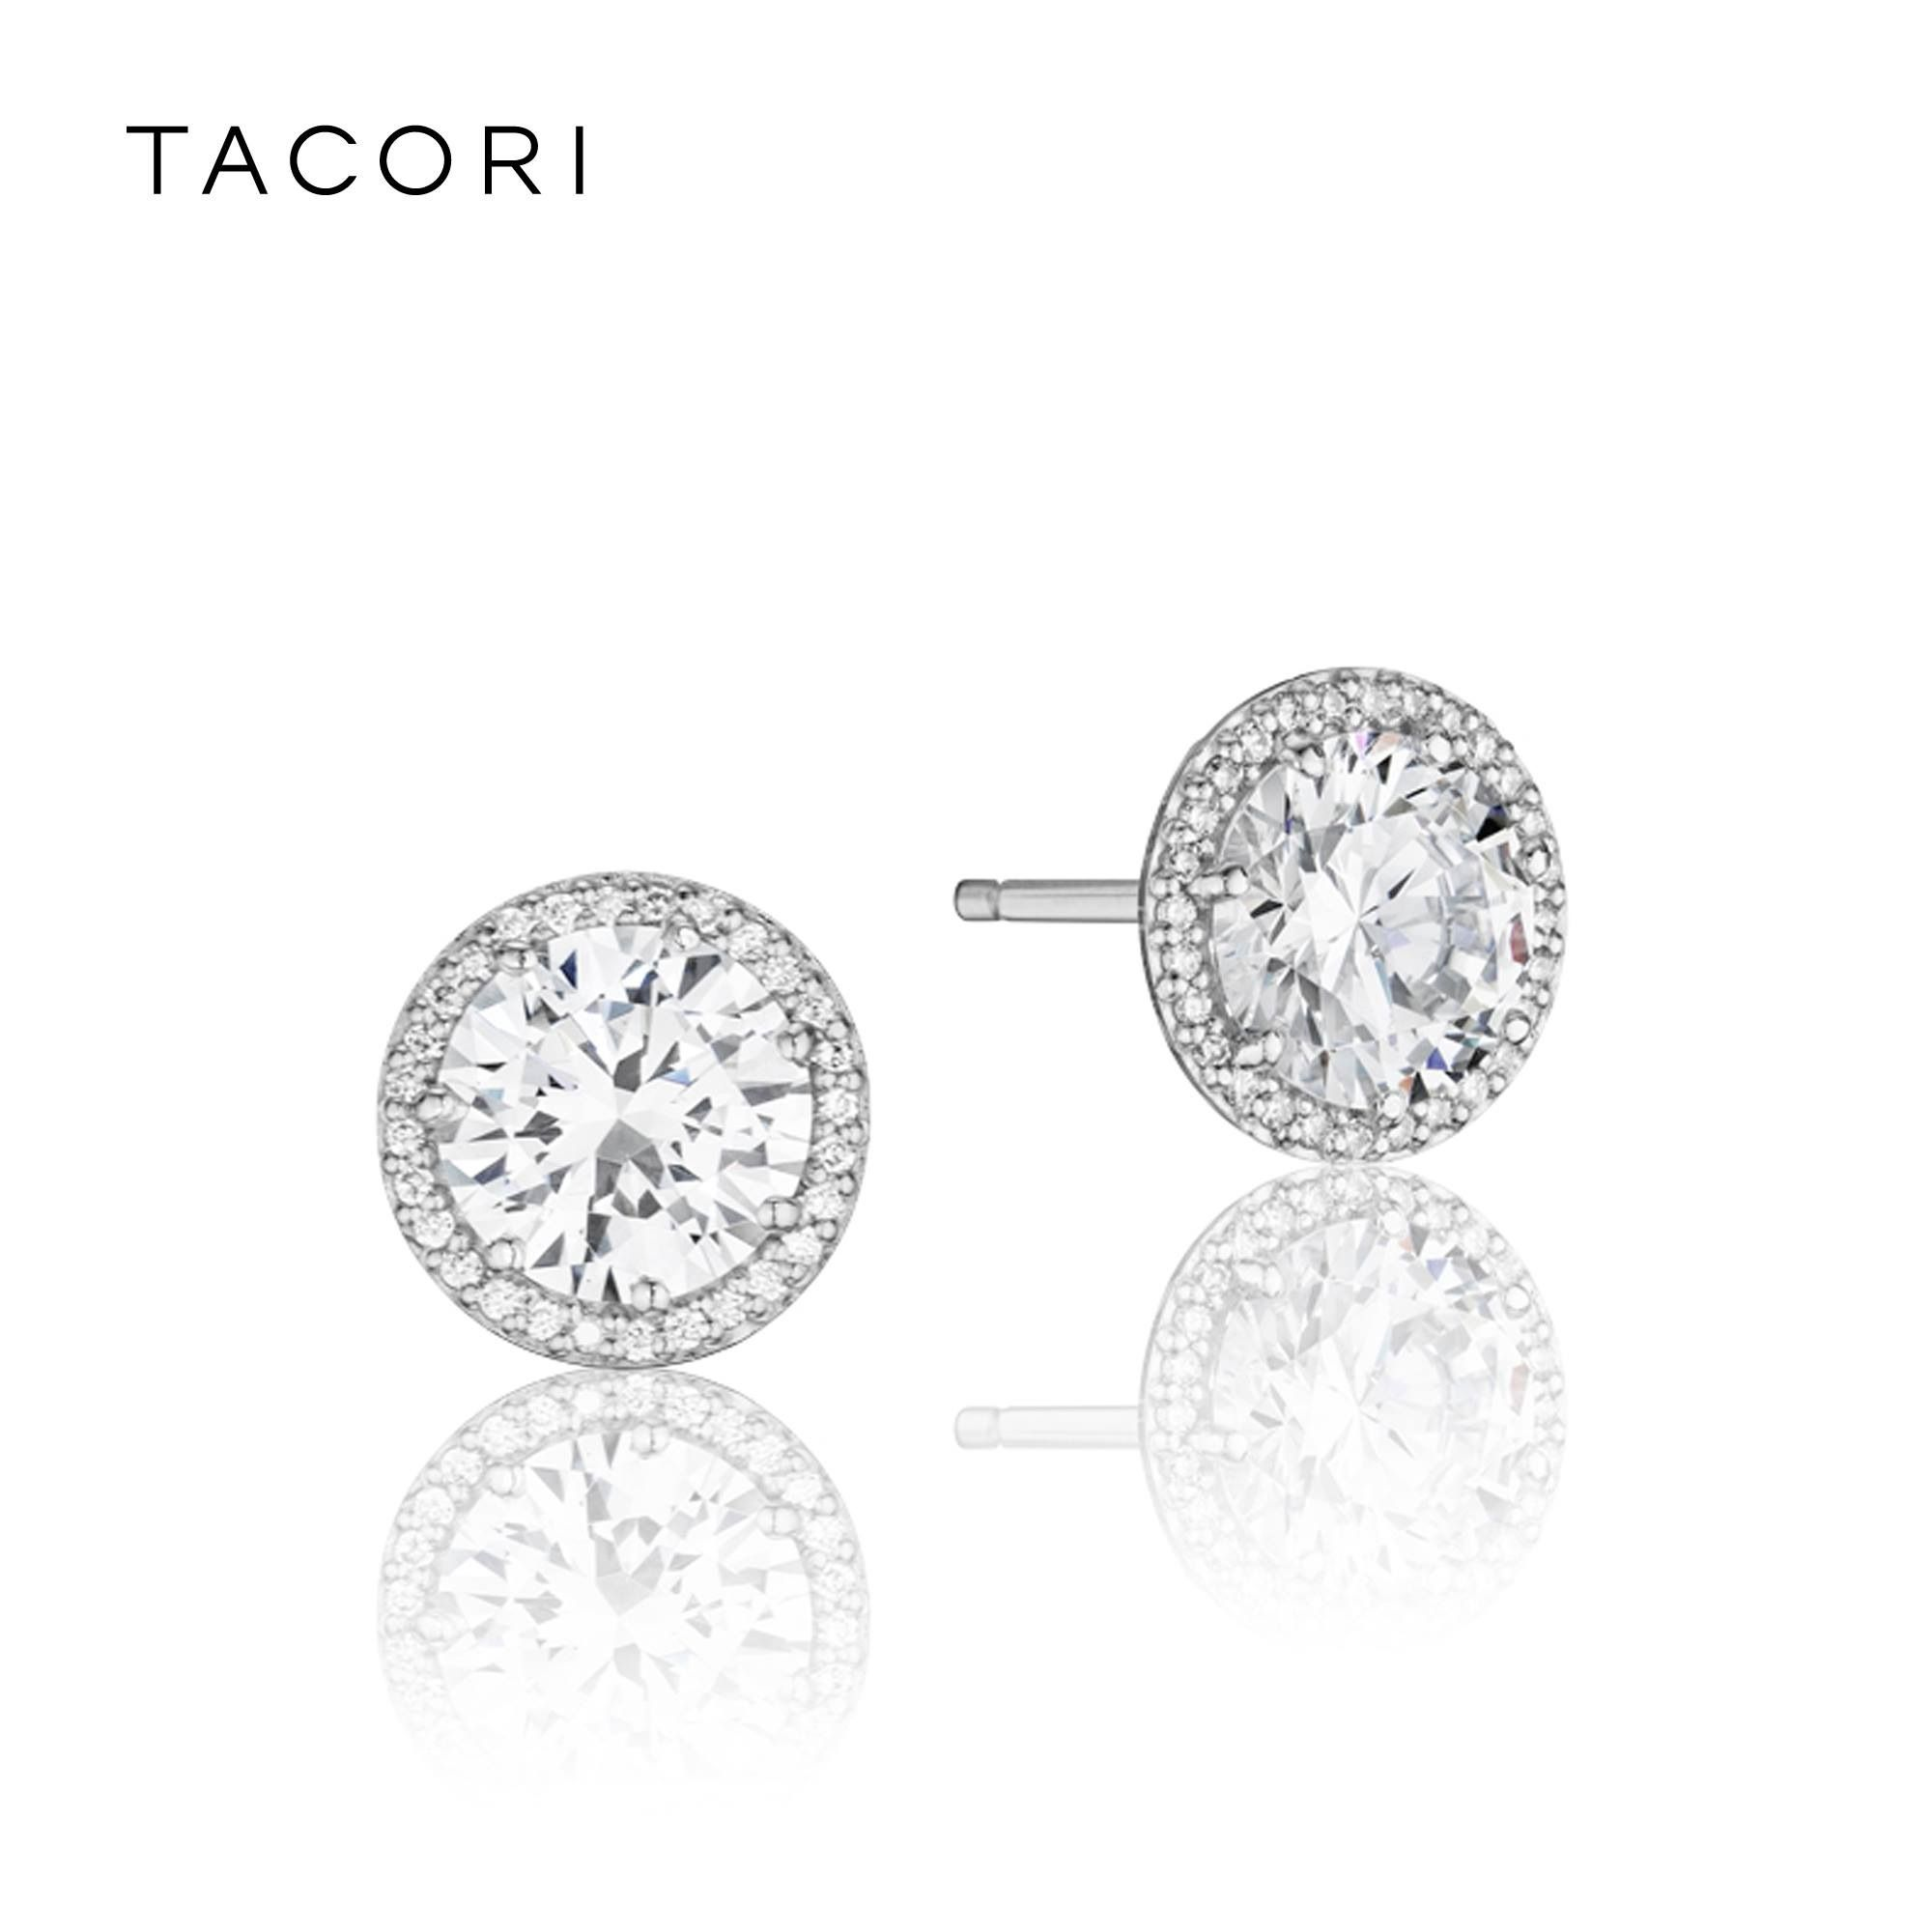 b522db231 Every girl needs a pair of diamond earrings | Jewels in 2019 ...